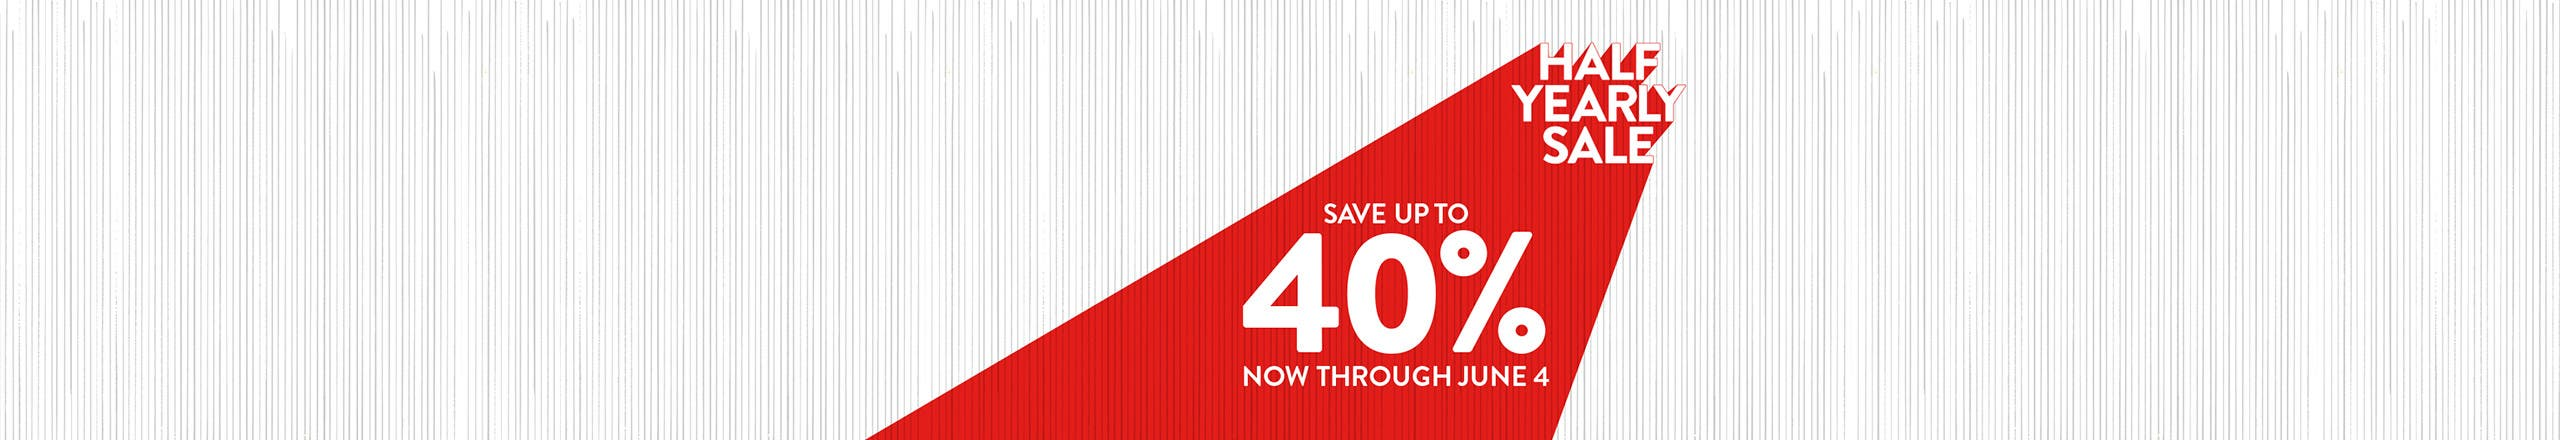 Half-Yearly Sale. Save up to 40% through June 4.